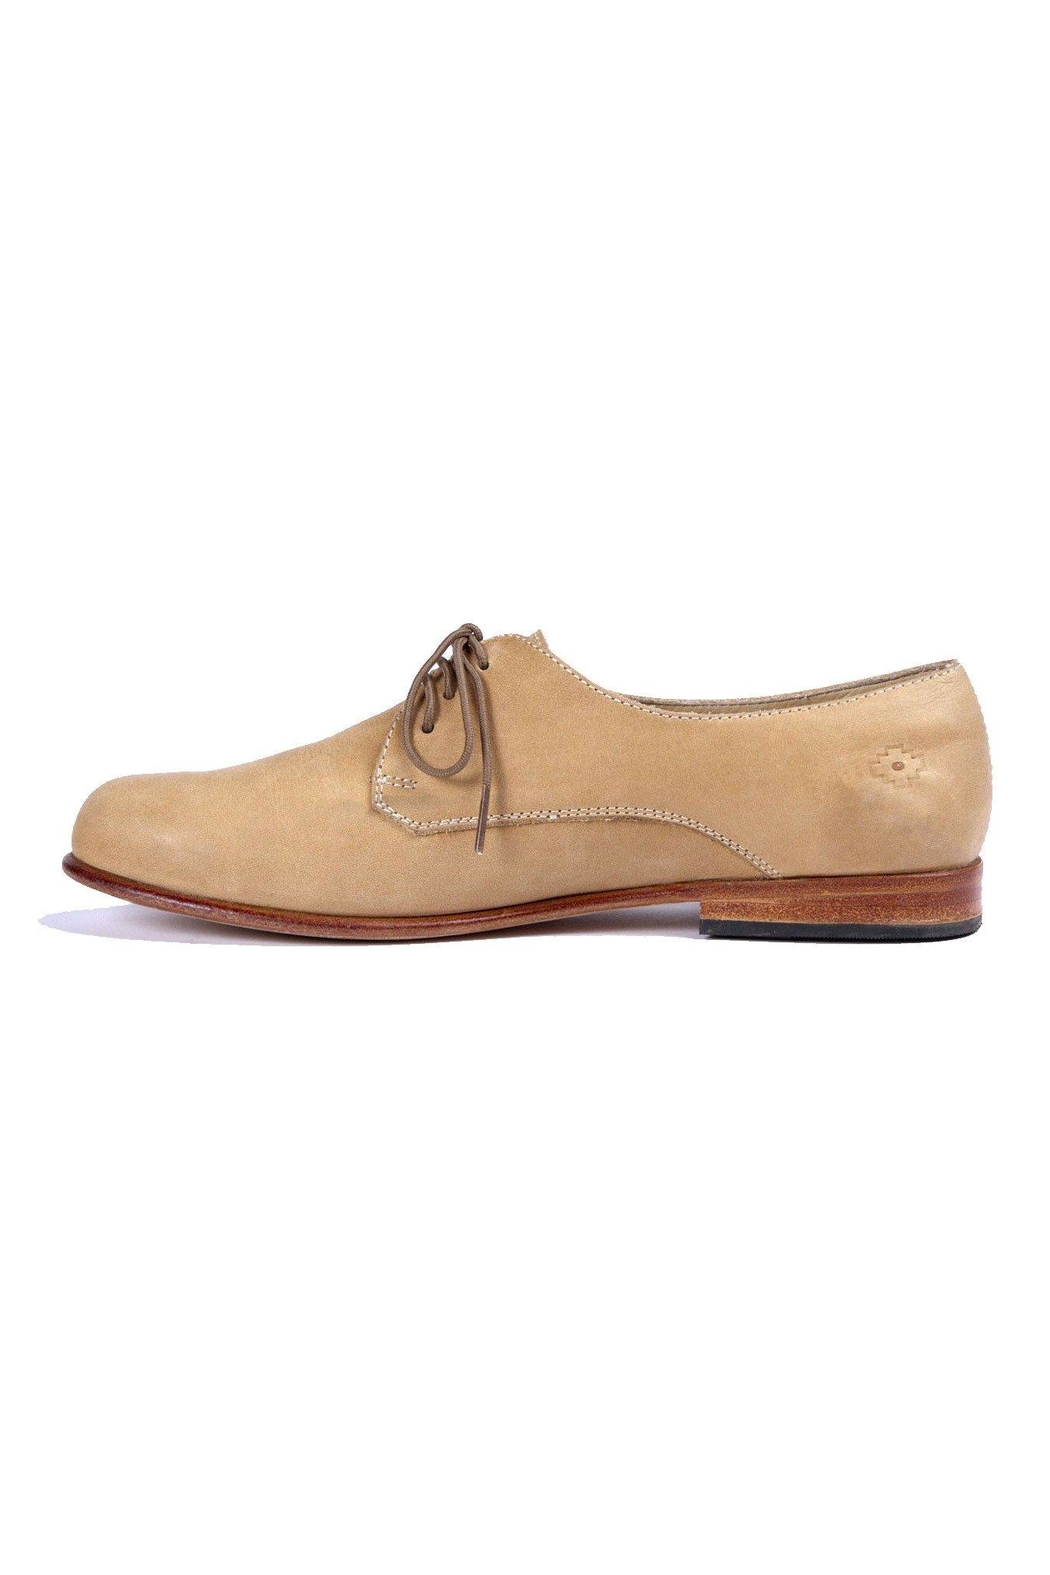 Nisolo Almond Oliver Oxford Shoes - Main Image